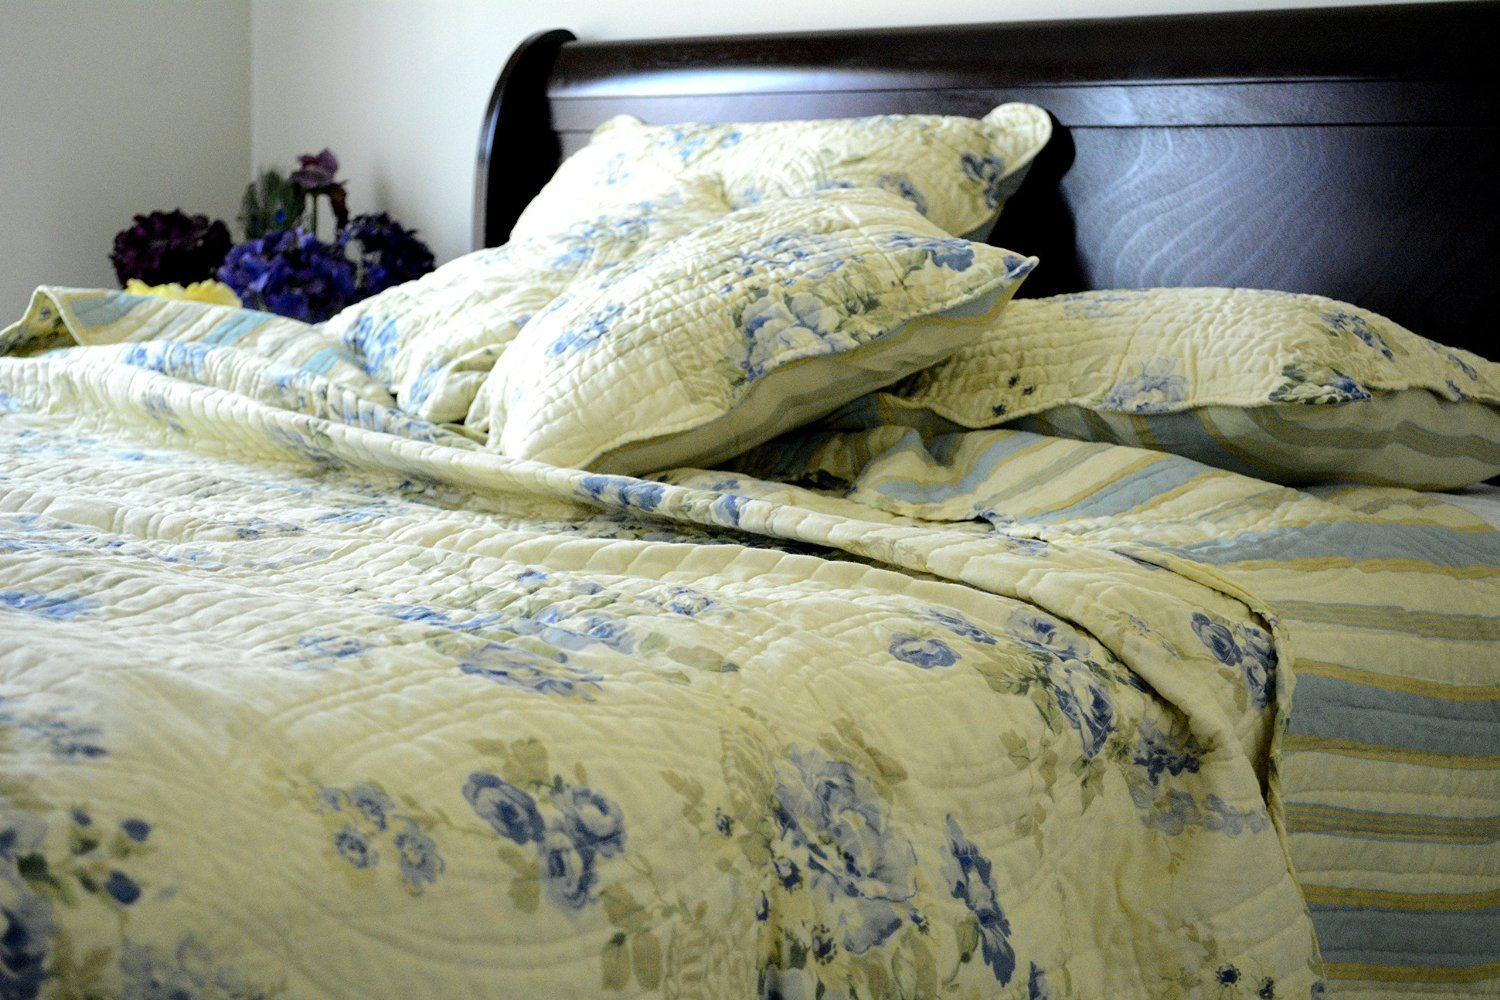 DaDa Bedding Reversible Patchwork Floral Camellia Quilt Bedspread Set, Ivory/Yellow & Blue